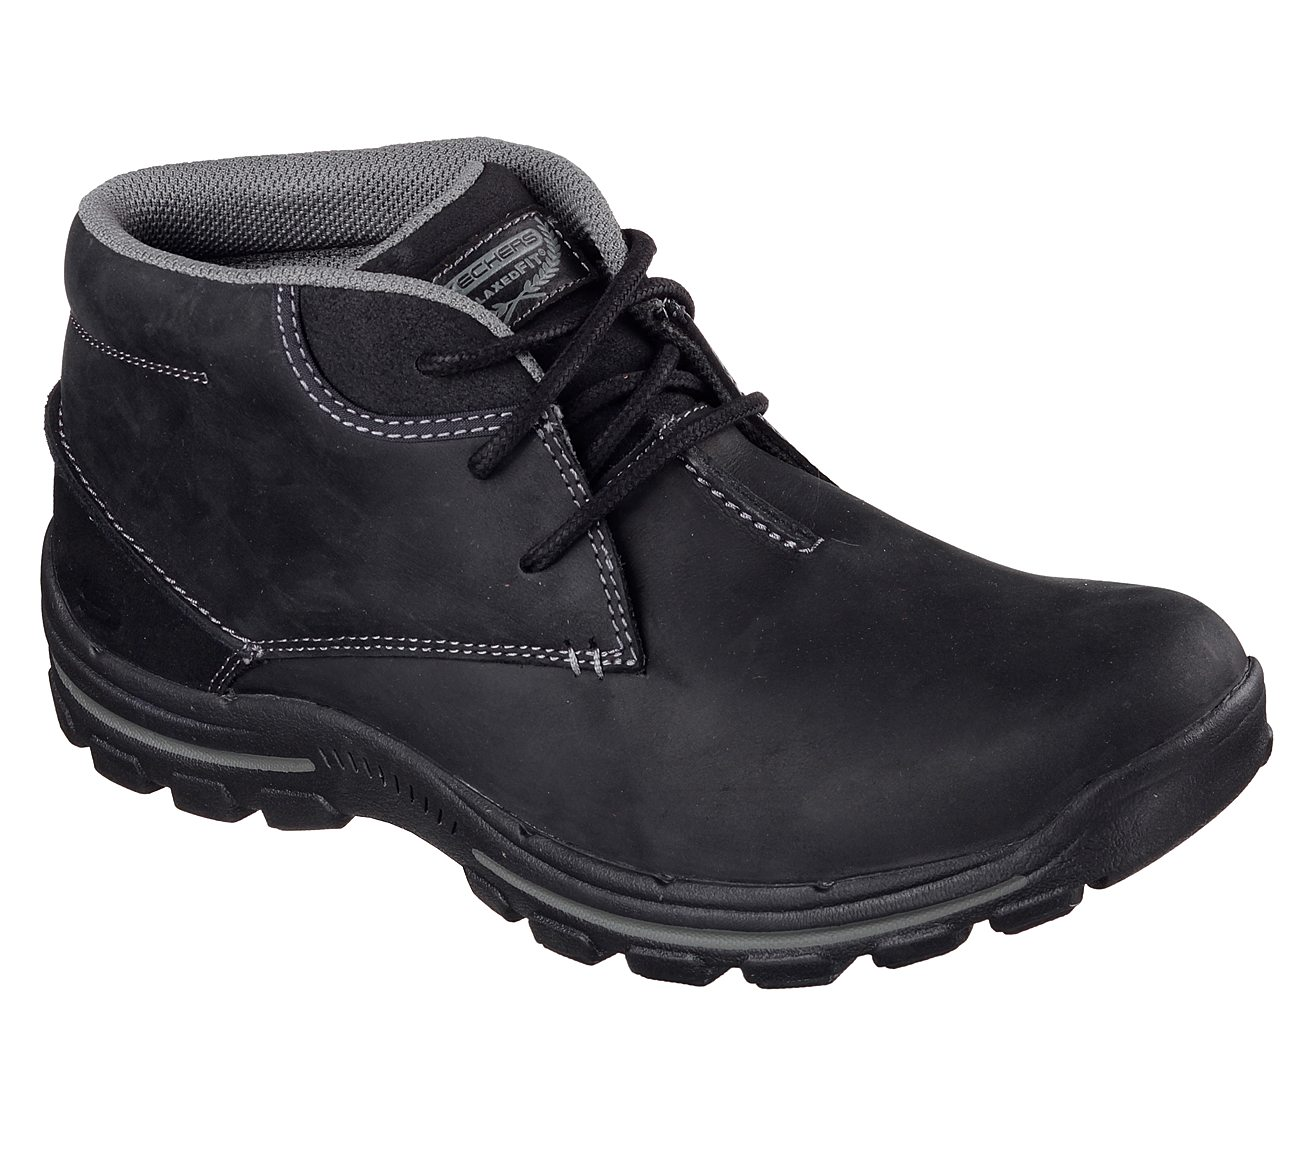 5a80f0fde0150 Buy SKECHERS Relaxed Fit: Braver - Horatio SKECHERS Relaxed Fit ...